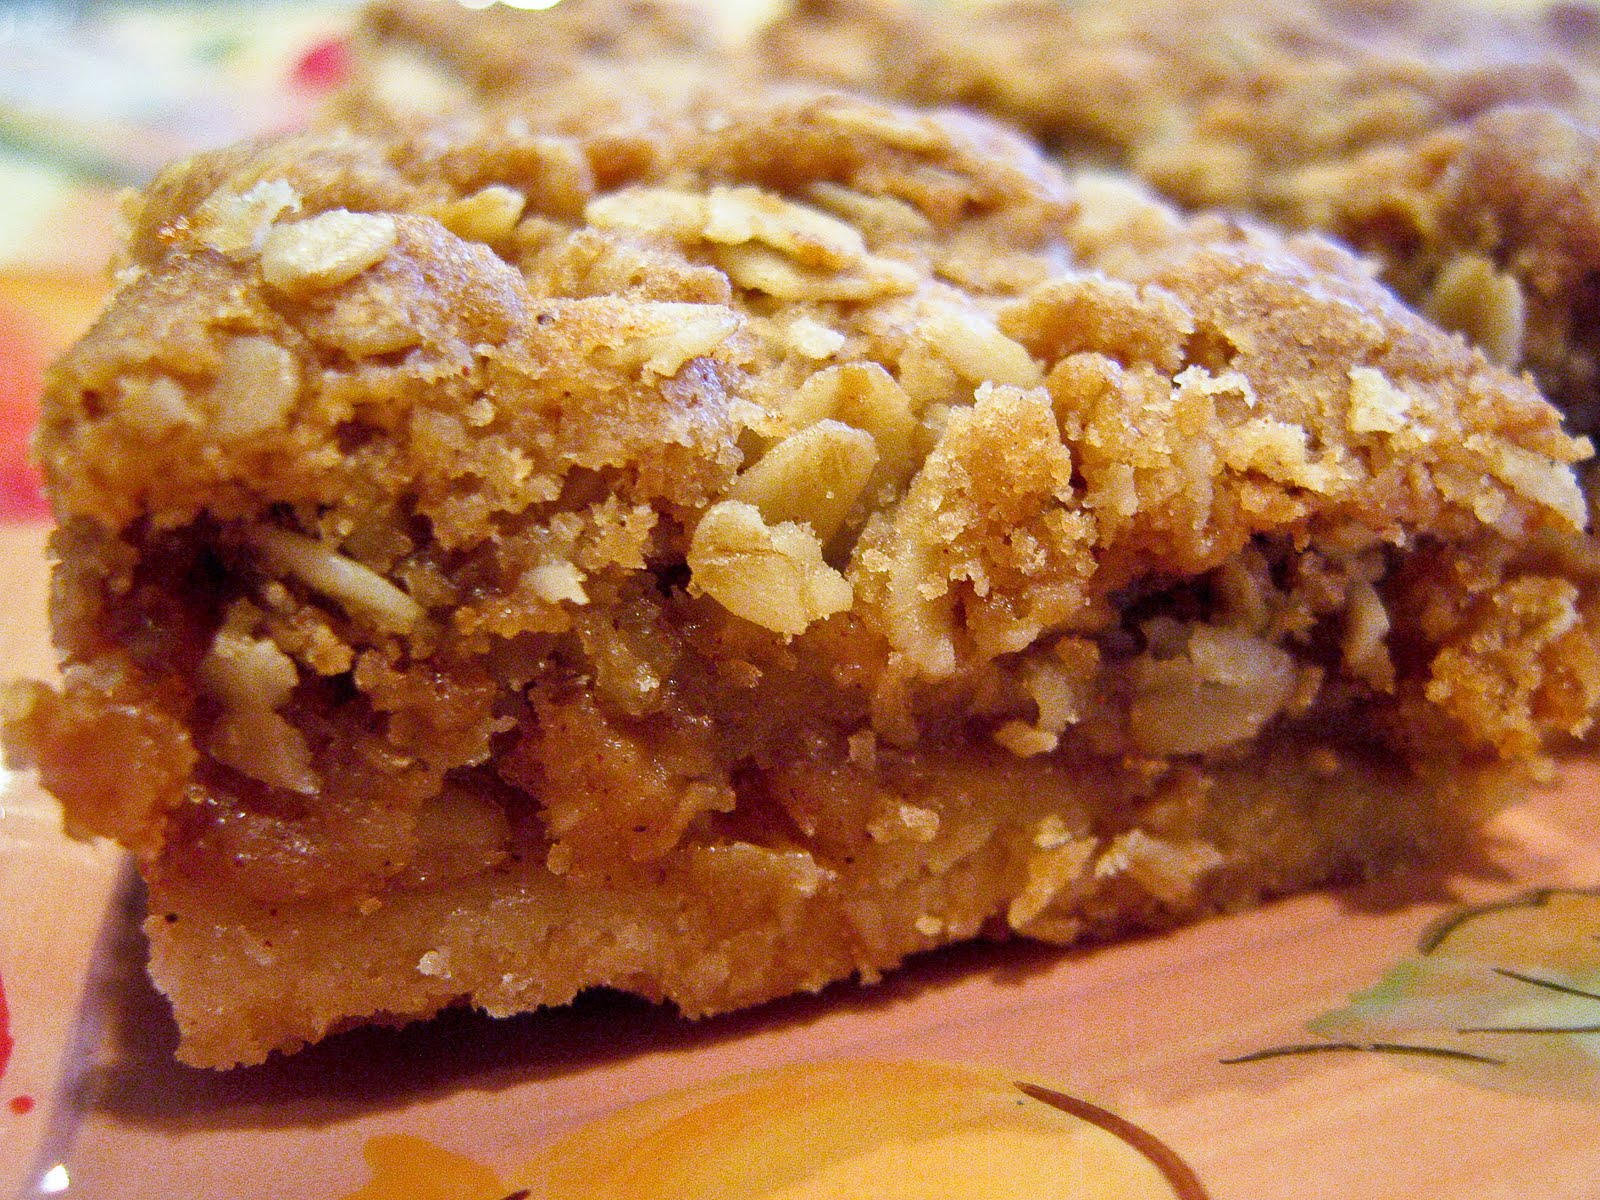 No Nut Apple Pie Bars - The Spiced Life